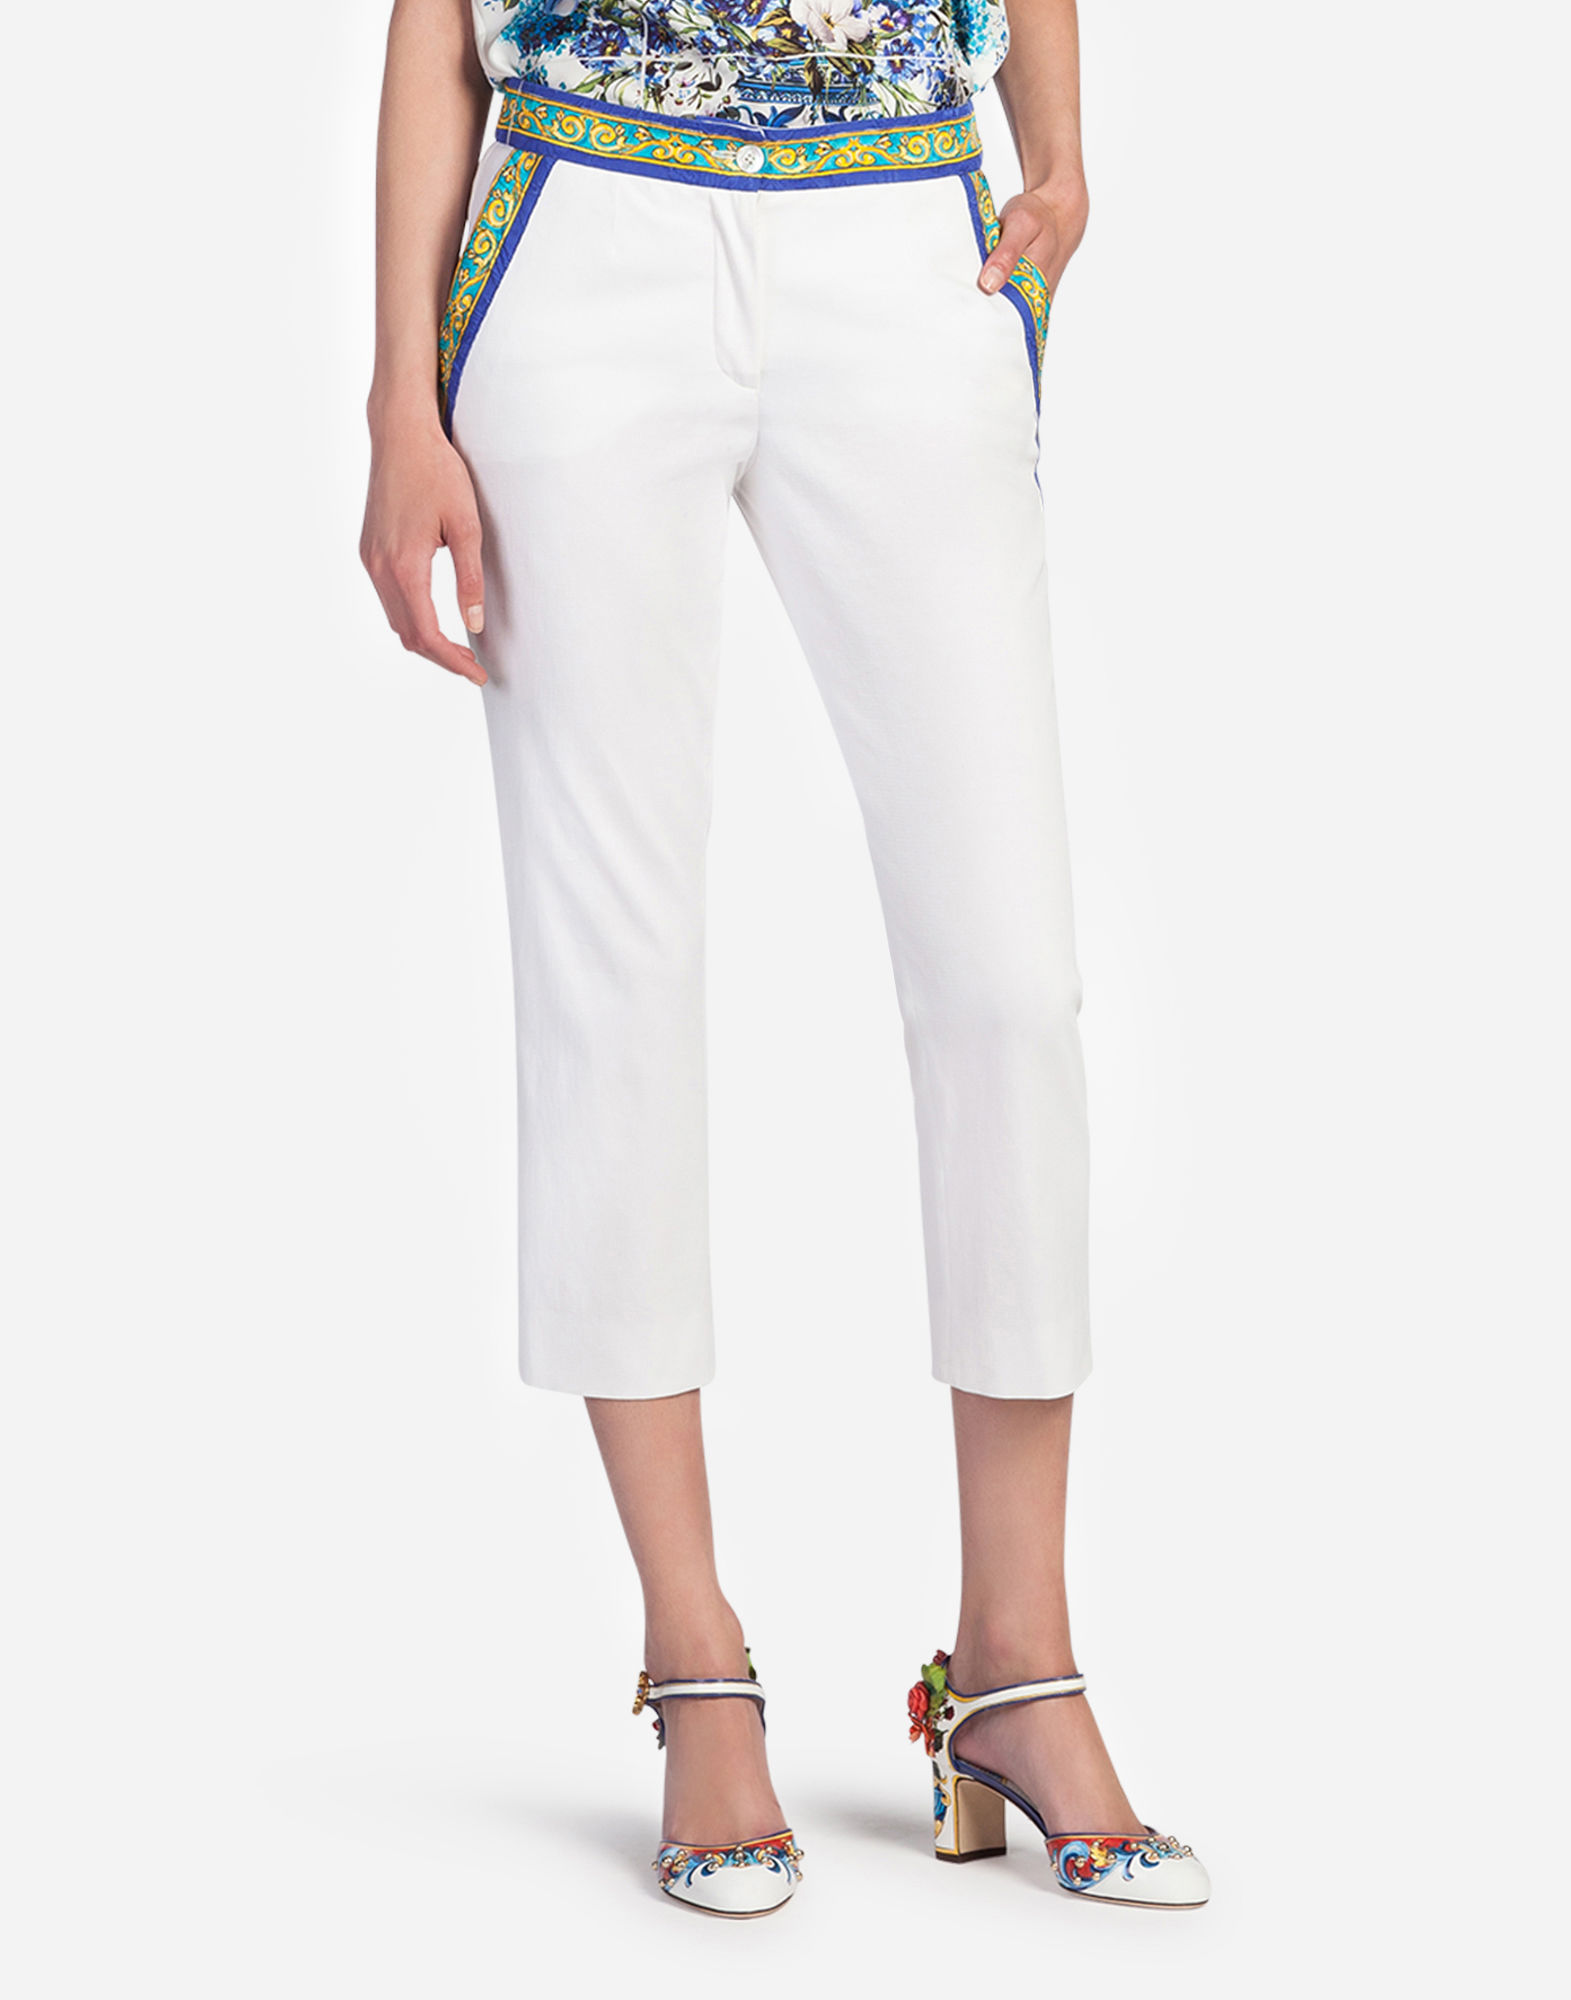 Dolce & Gabbana Cotton Pants With Majolica Details In White